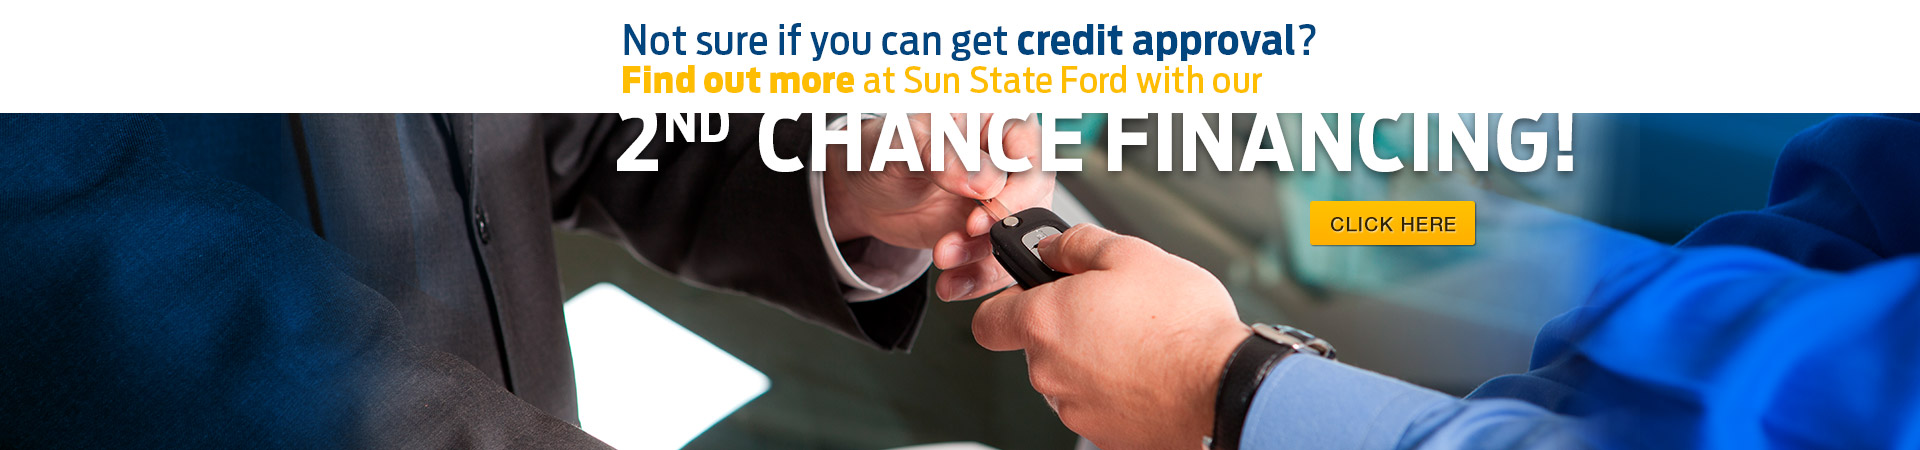 SunStateFord-2ndChance-1920x450.jpg